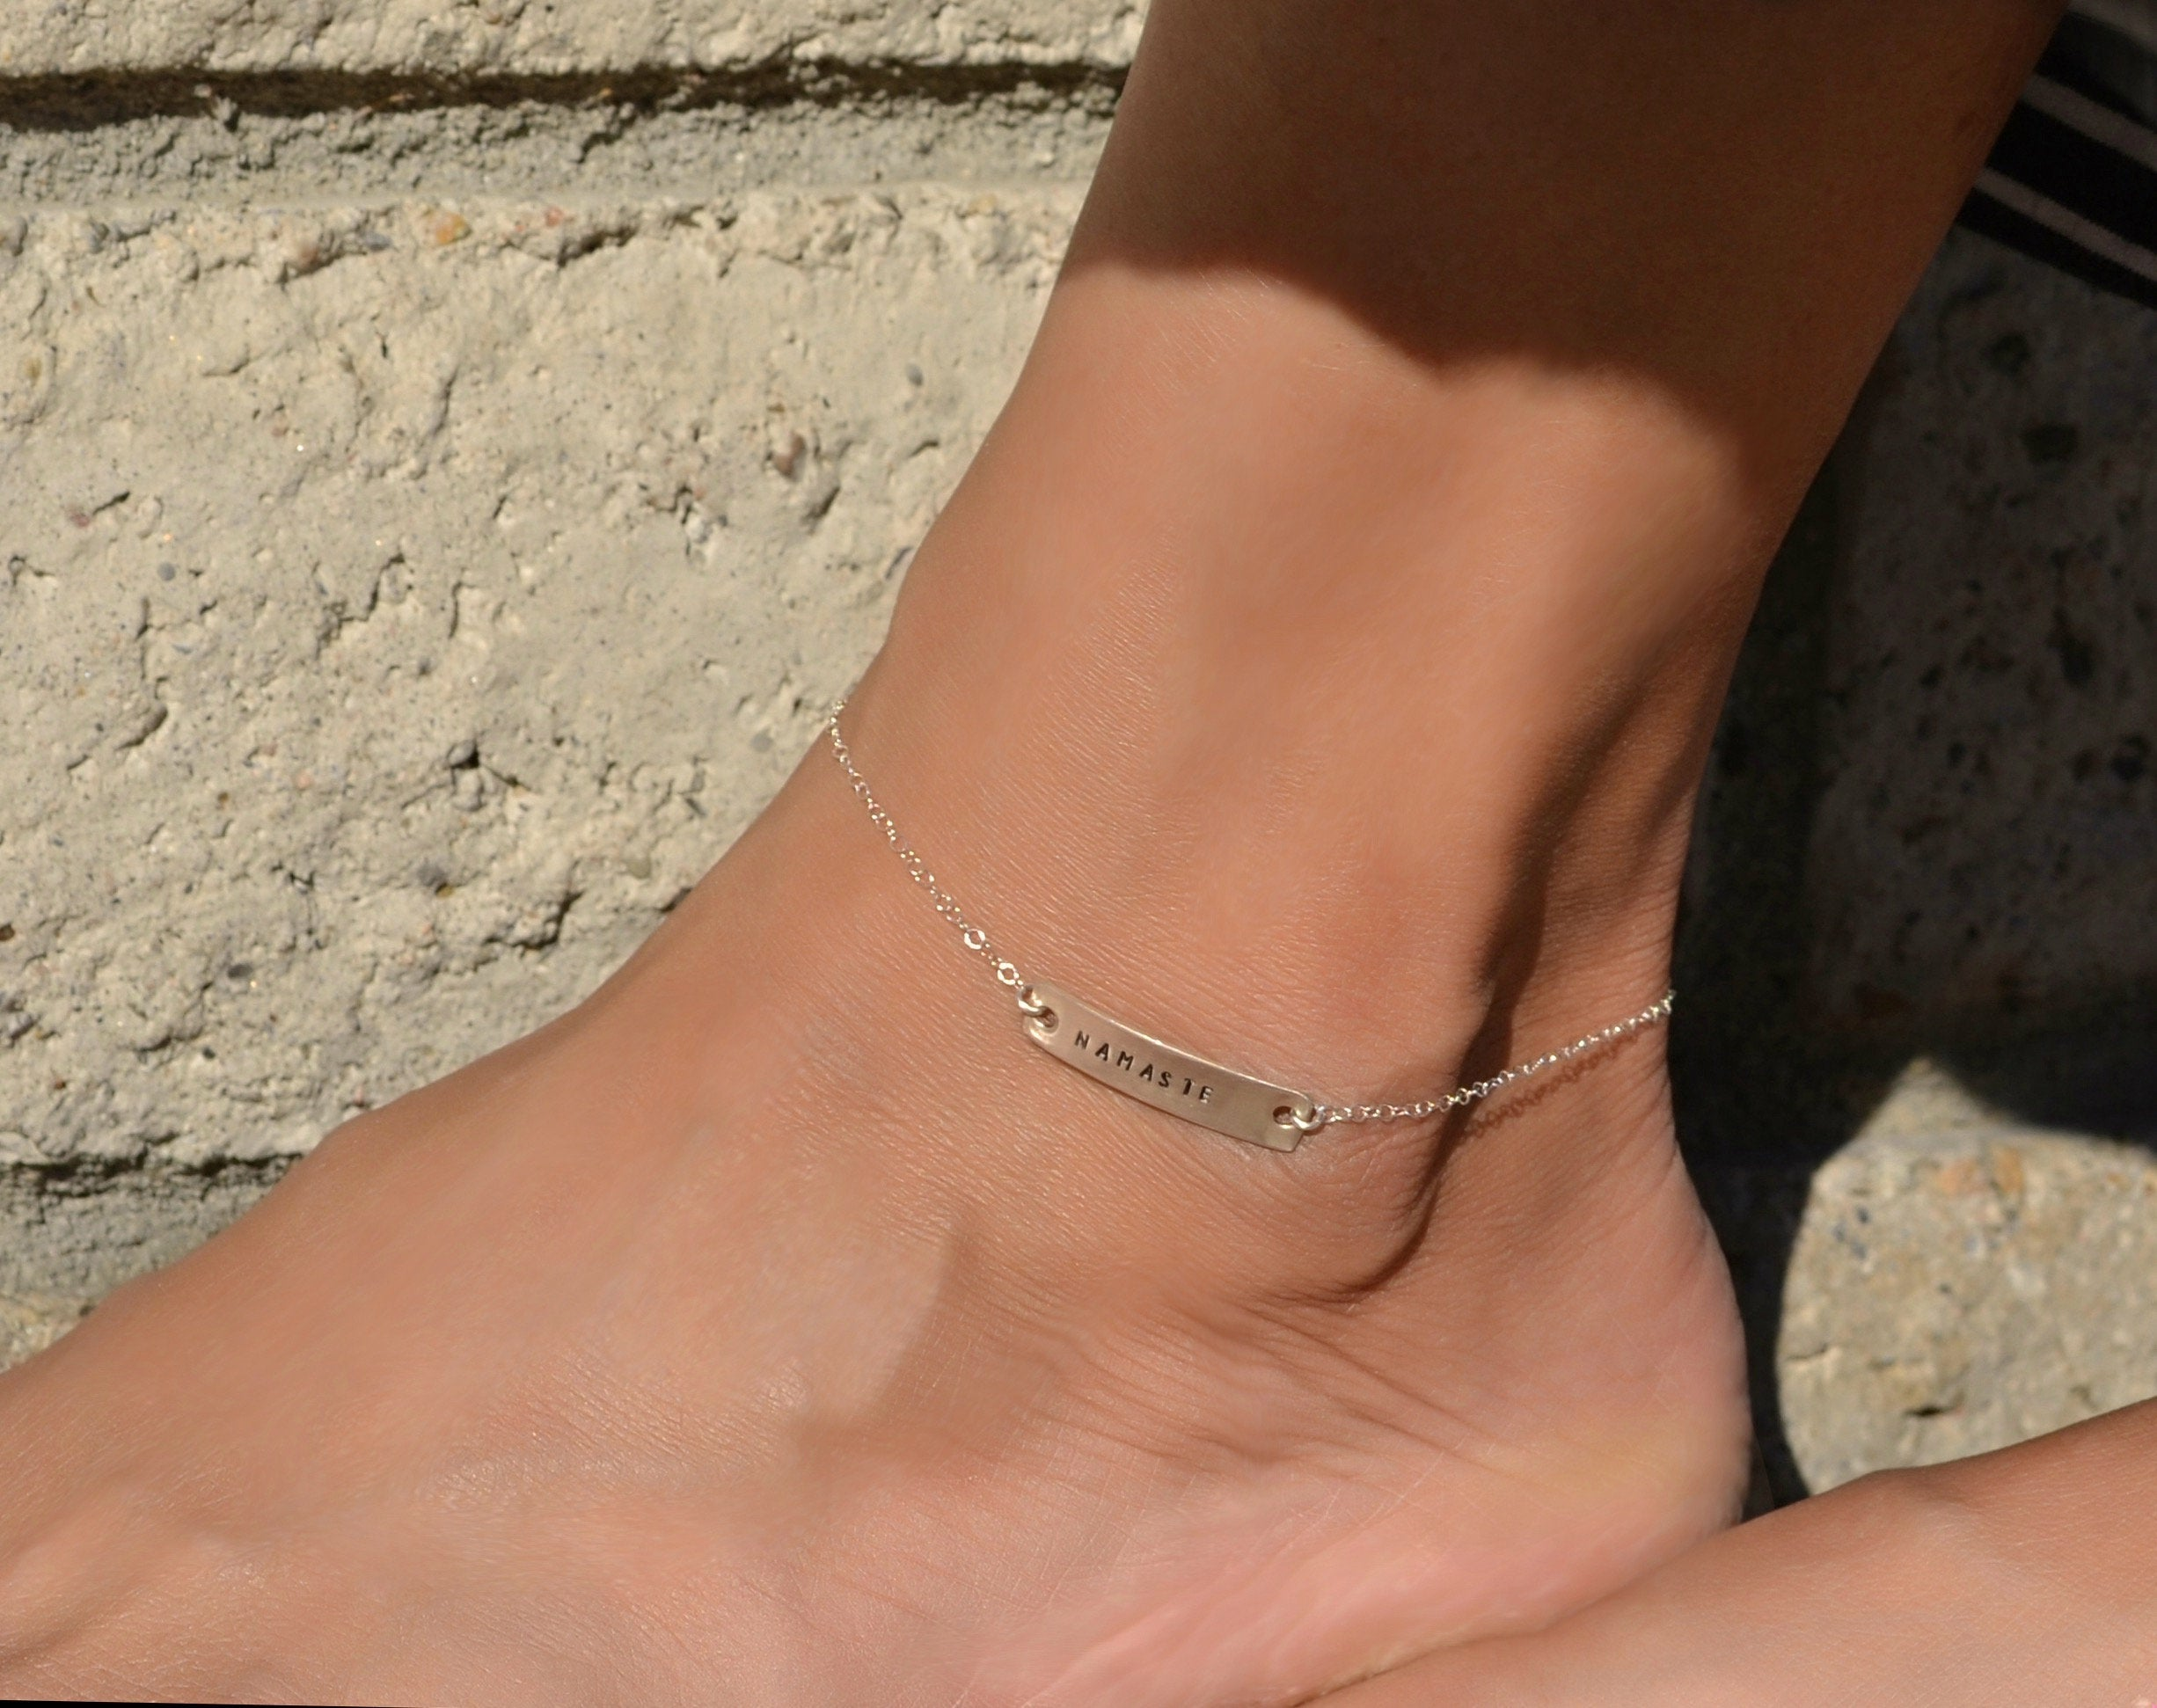 Personalized ankle name bracelet/ Personalized anklet/ Rose gold ankle chain, Best friend anklets, Bridesmaids anklet